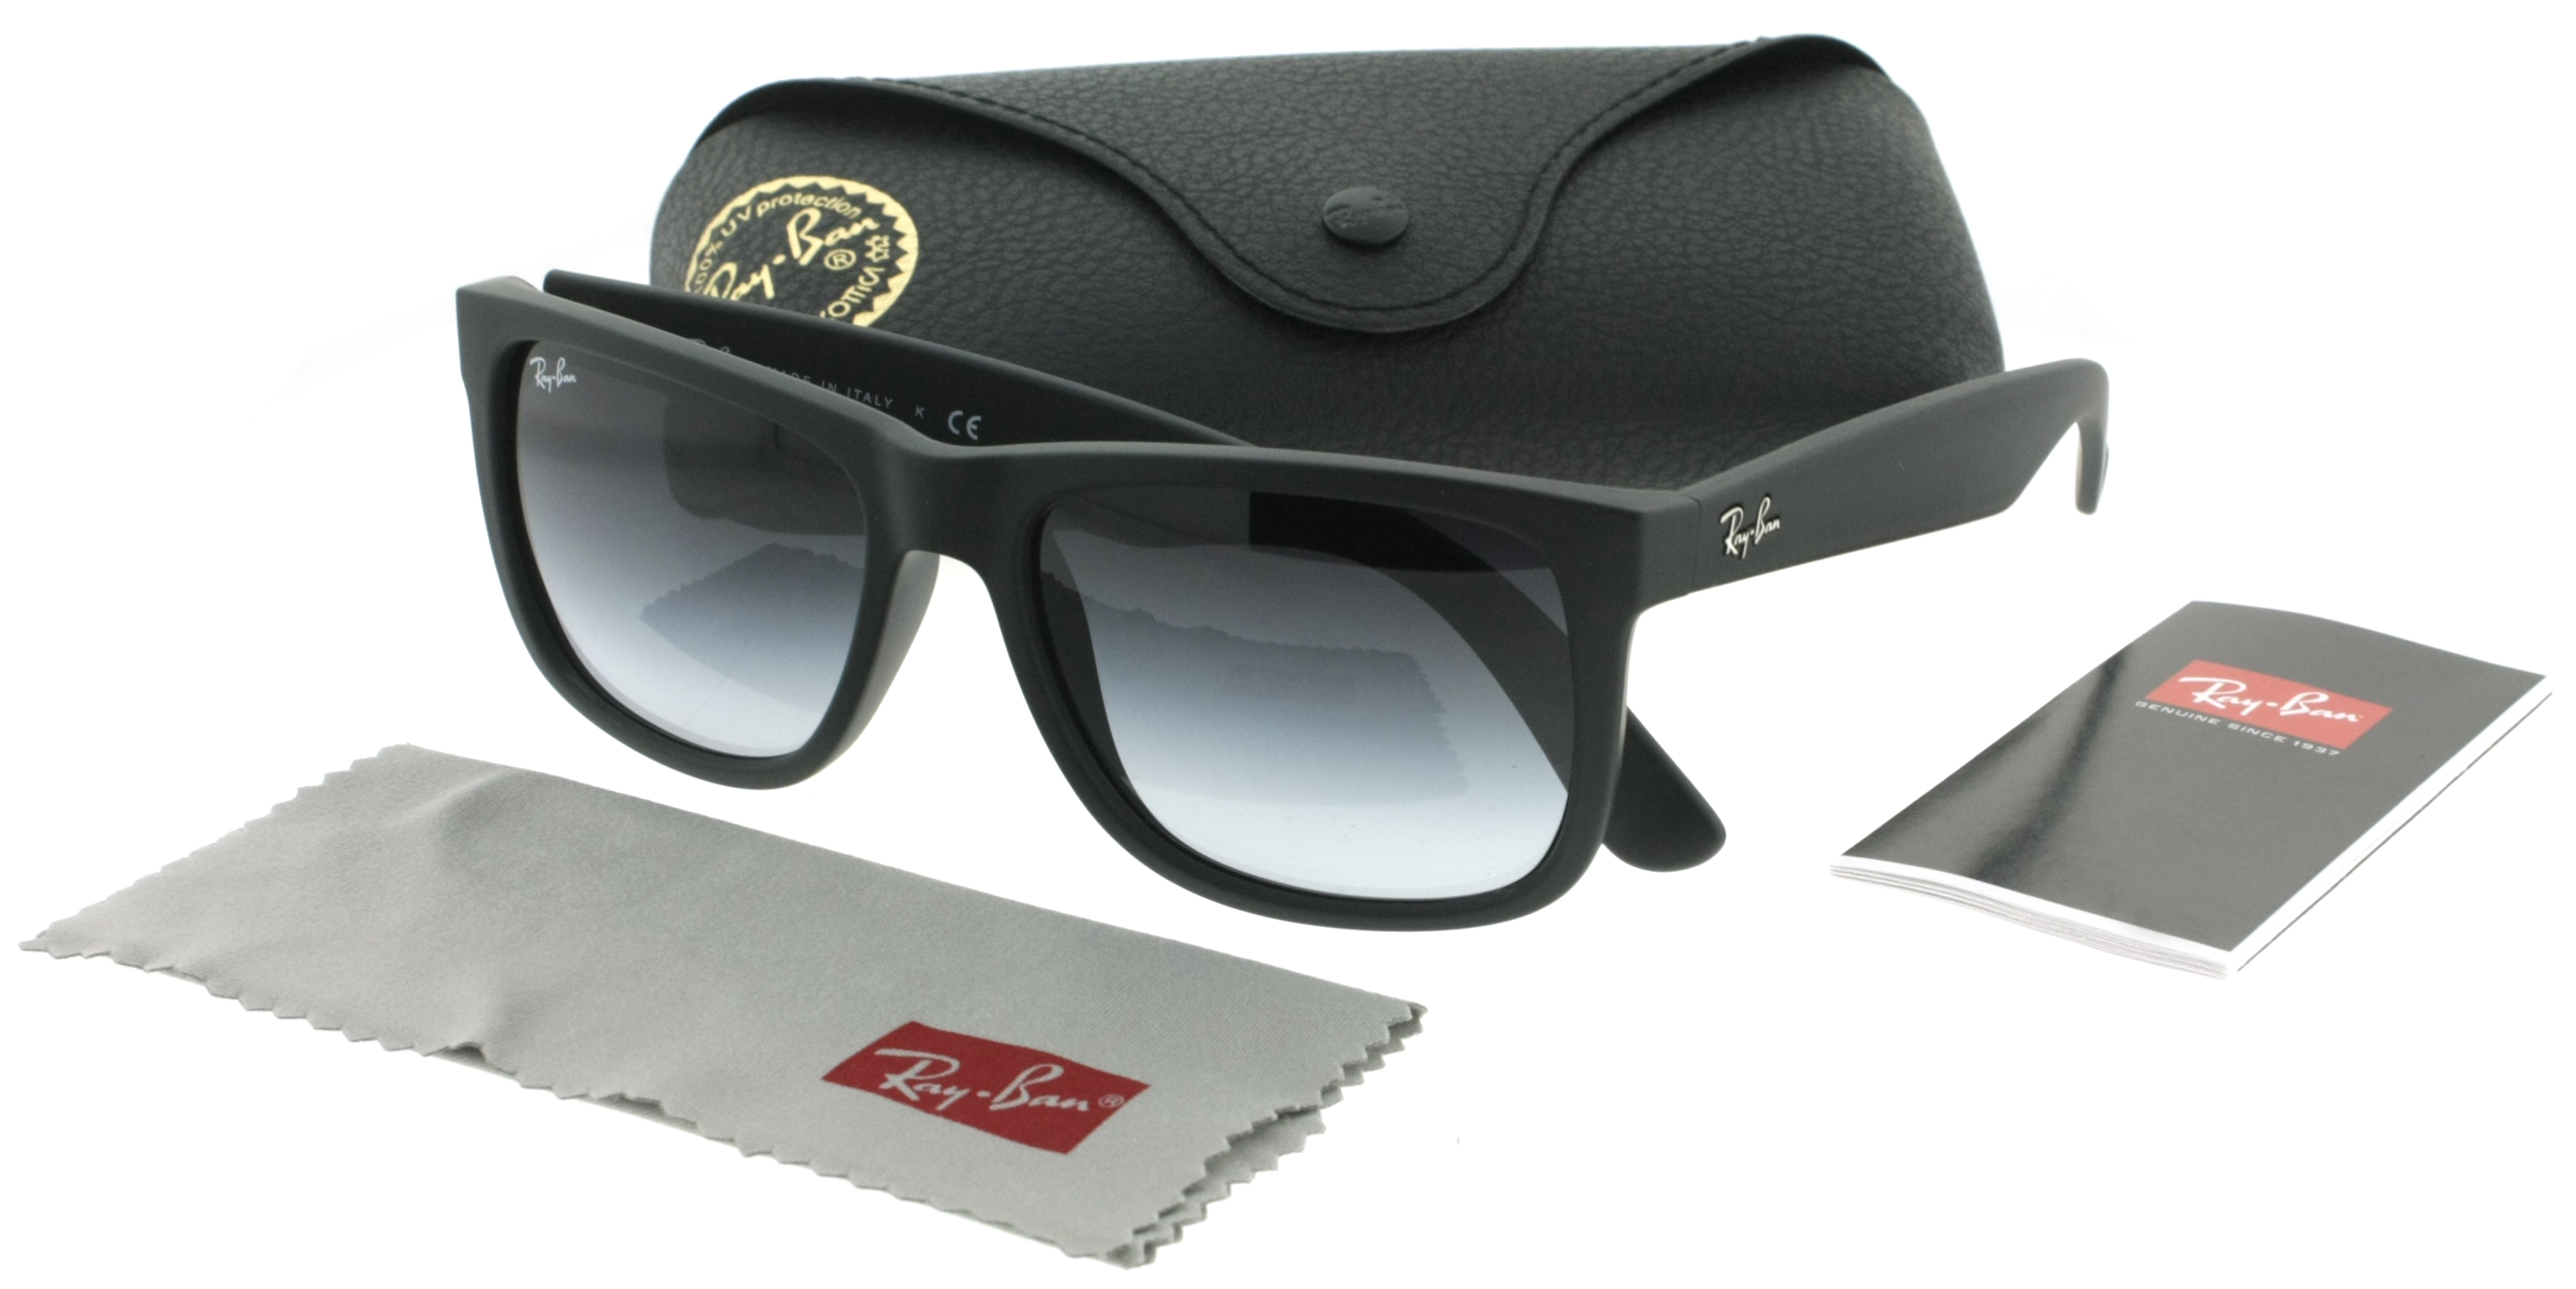 dd998673571 ... get sunglasses tech gold frame rb ray ban rx sunglassesray ban rb 4165  justin 00deb 3a145